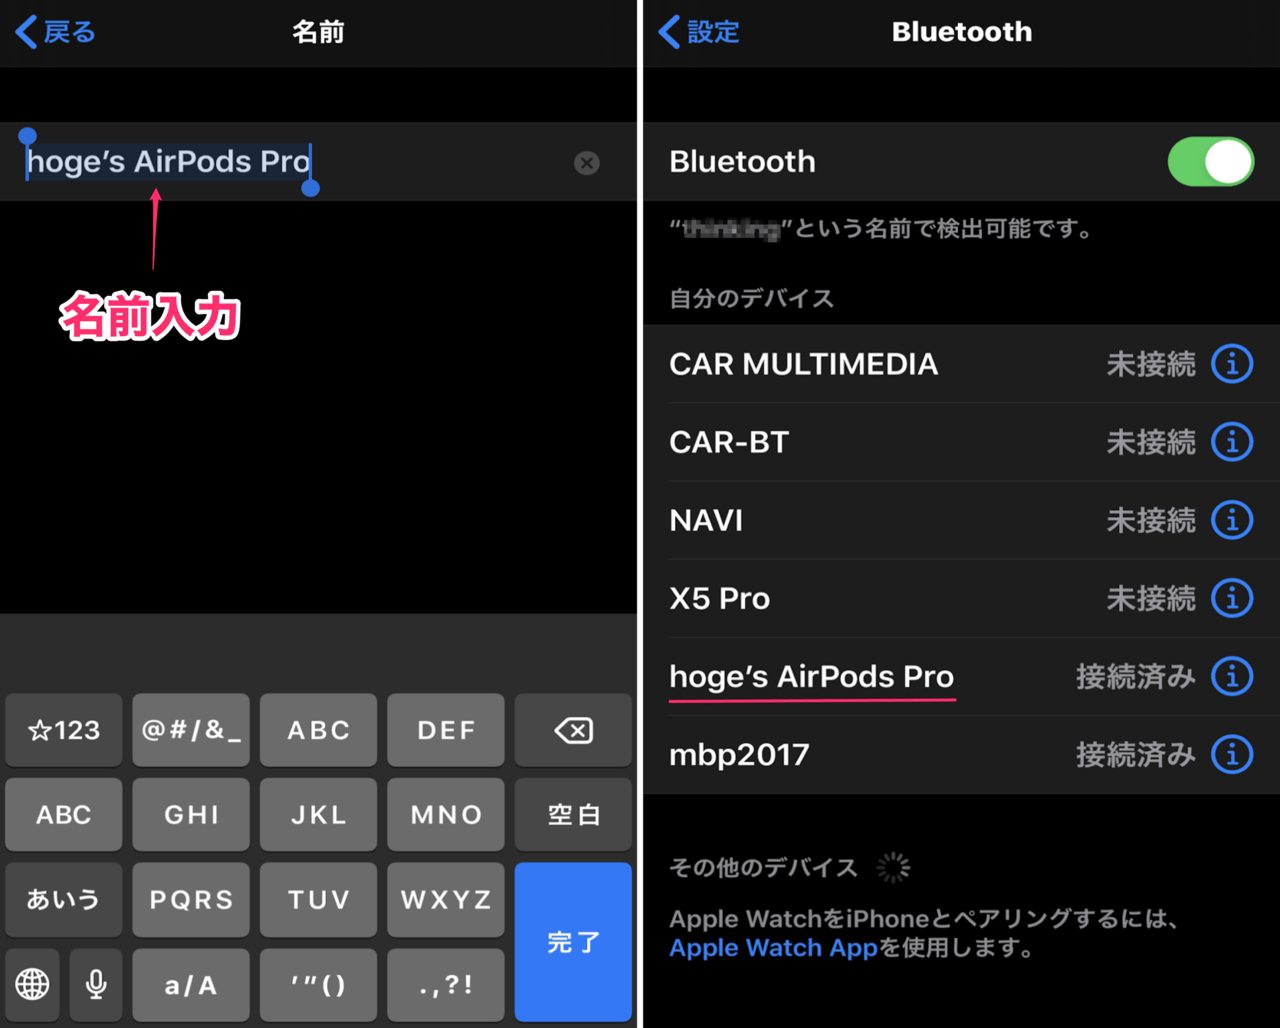 AirPods Proに任意の名称を入力